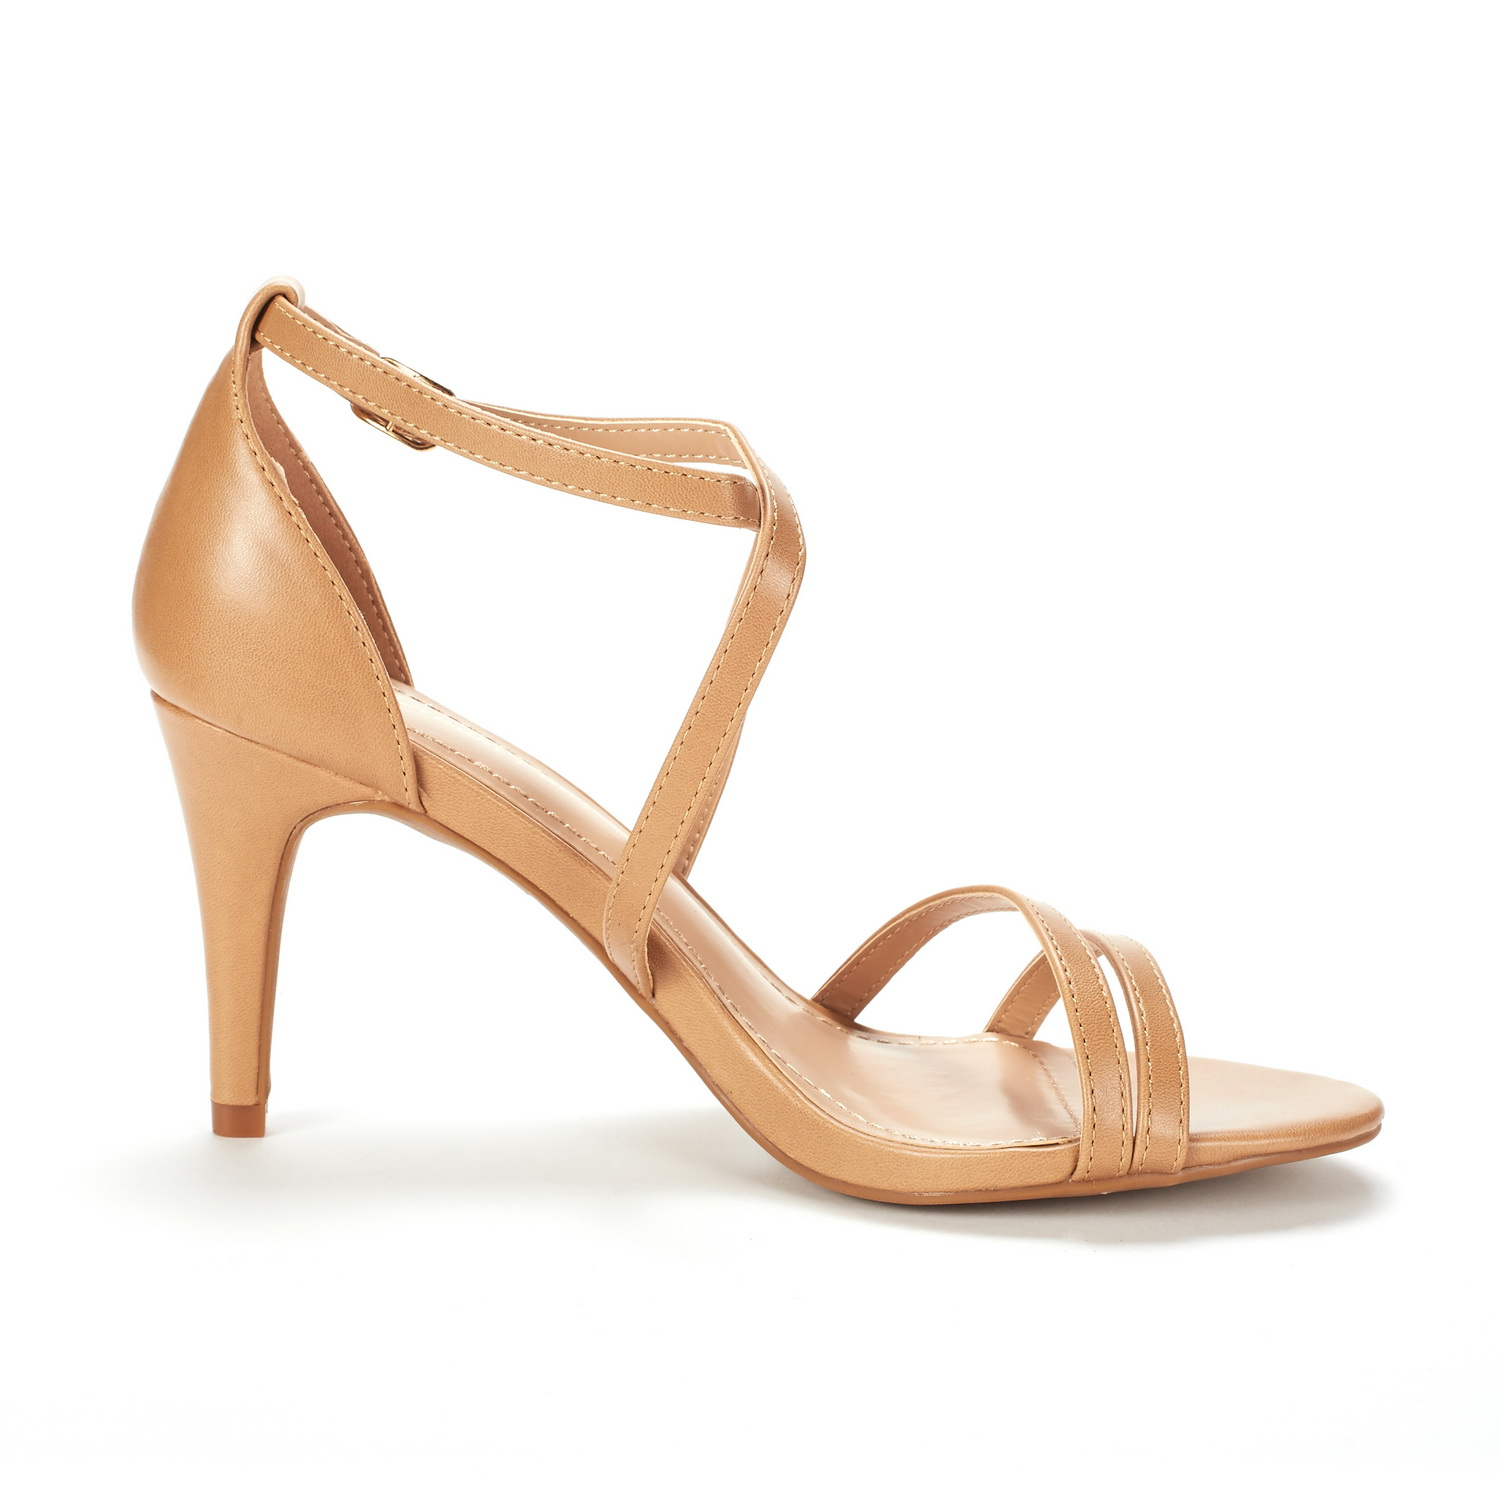 DREAM-PAIRS-Women-039-s-Ankle-Strap-High-Heel-Sandals-Dress-Shoes-Wedding-Party thumbnail 8